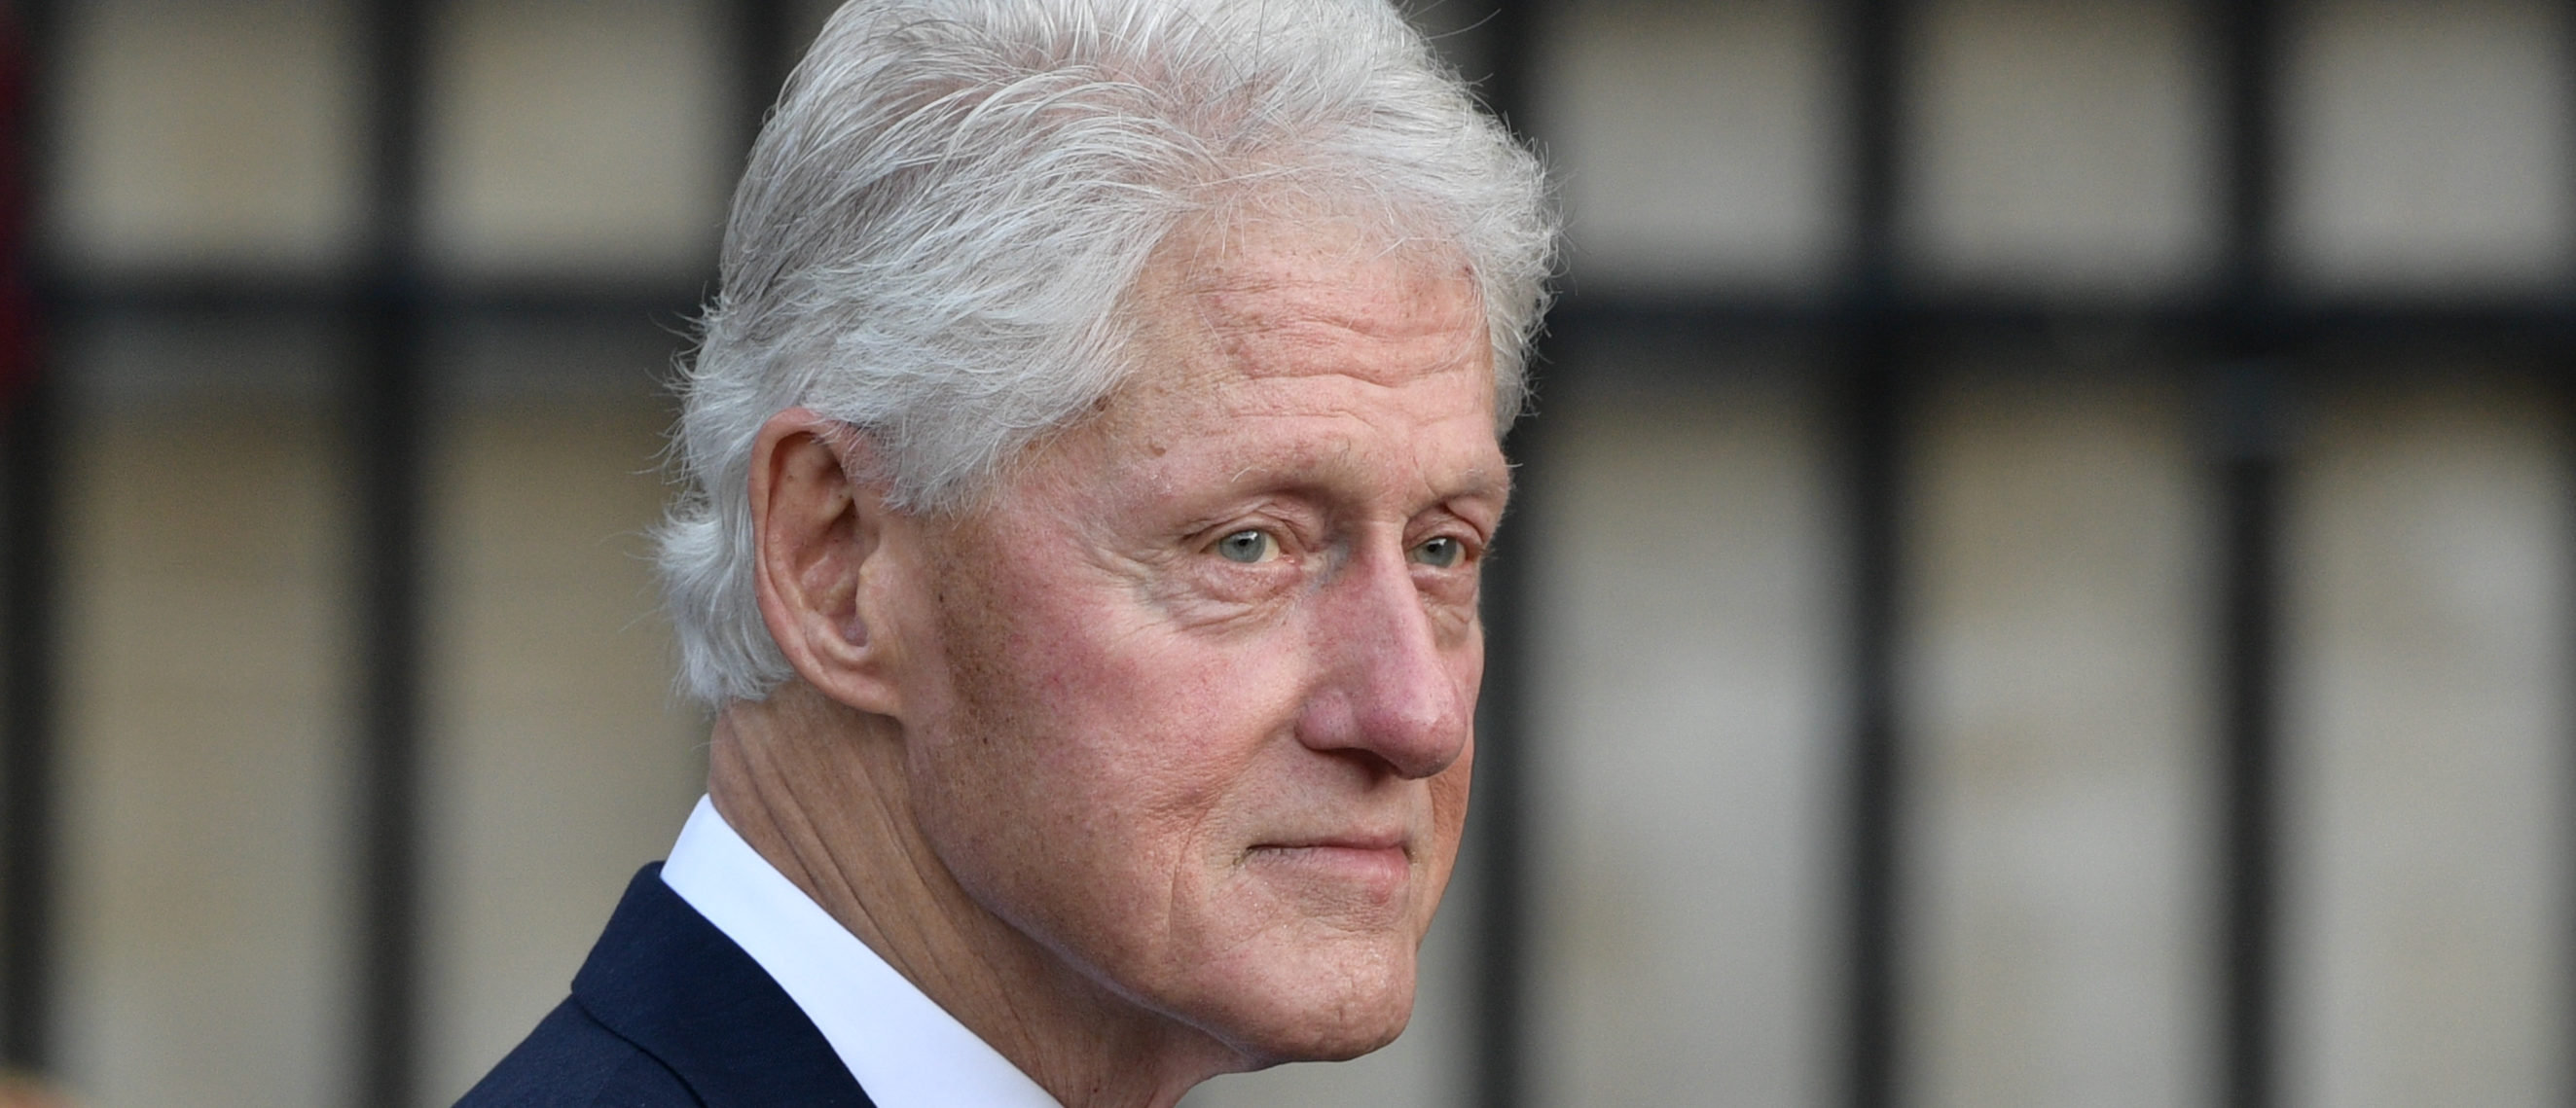 'Justice Can Never Be Too Late': Bill Clinton Accusers Speak After Ronan Farrow Says Former President Was 'Credibly Accused Of Rape'